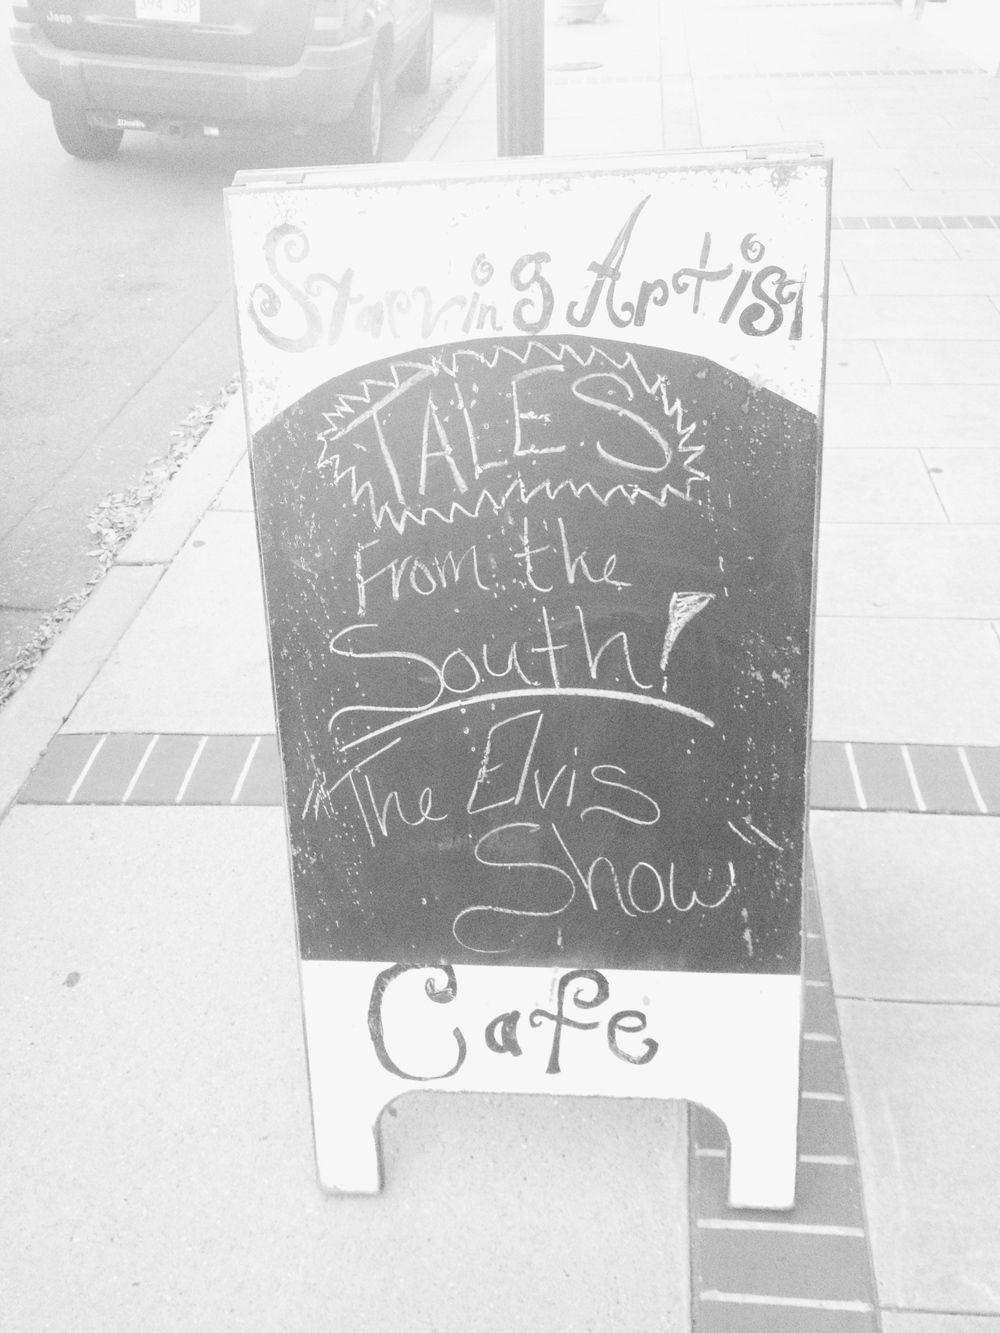 Tales from the South at Starving Artist's Cafe in Arenta neighborhood of Little Rock, AR.